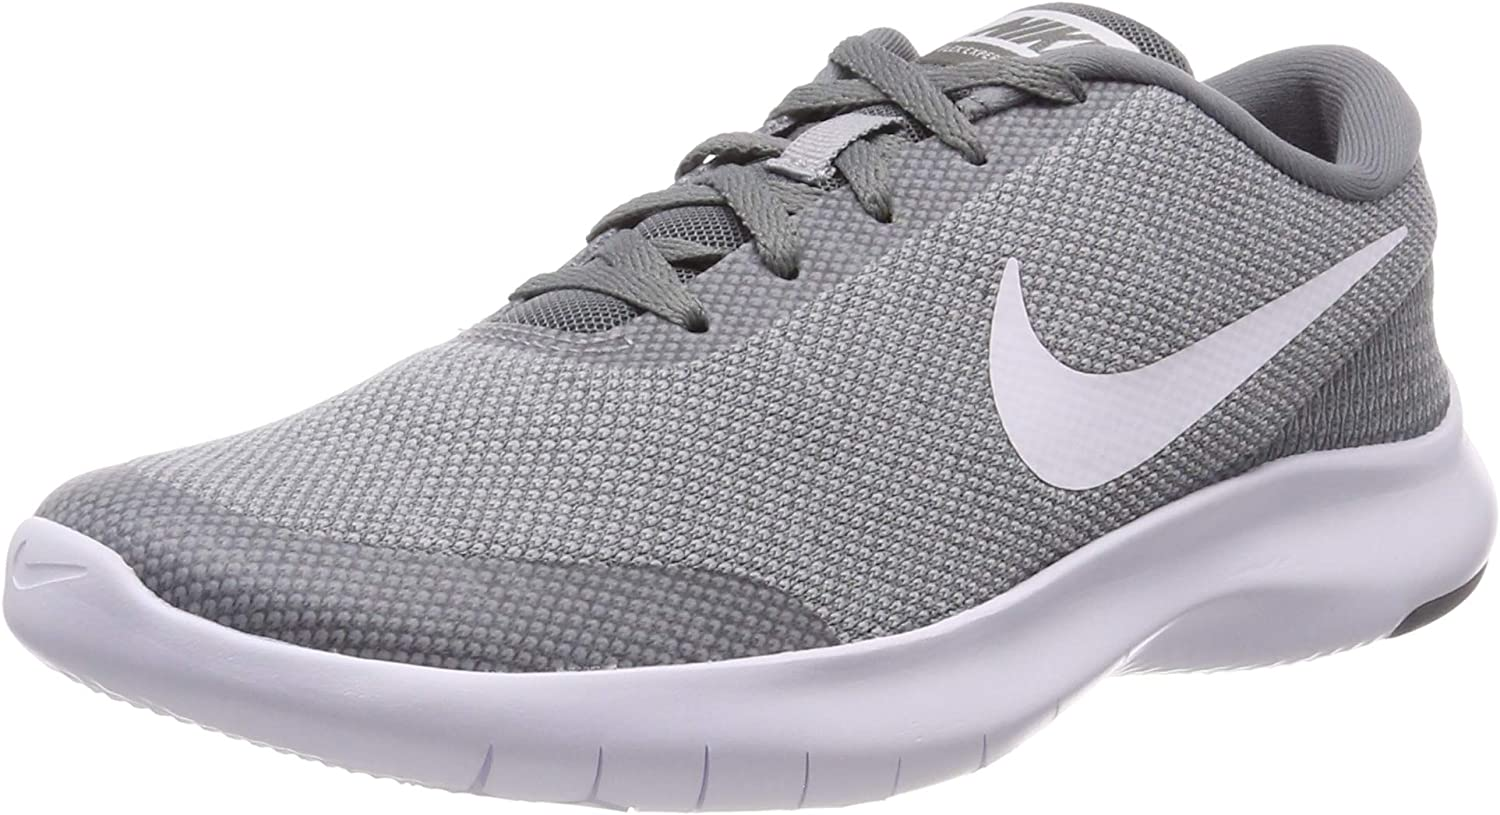 Nike Women s W Flex Experience Rn 7 Training Shoes, Wolf White-Cool Grey 010 , 7.5 US